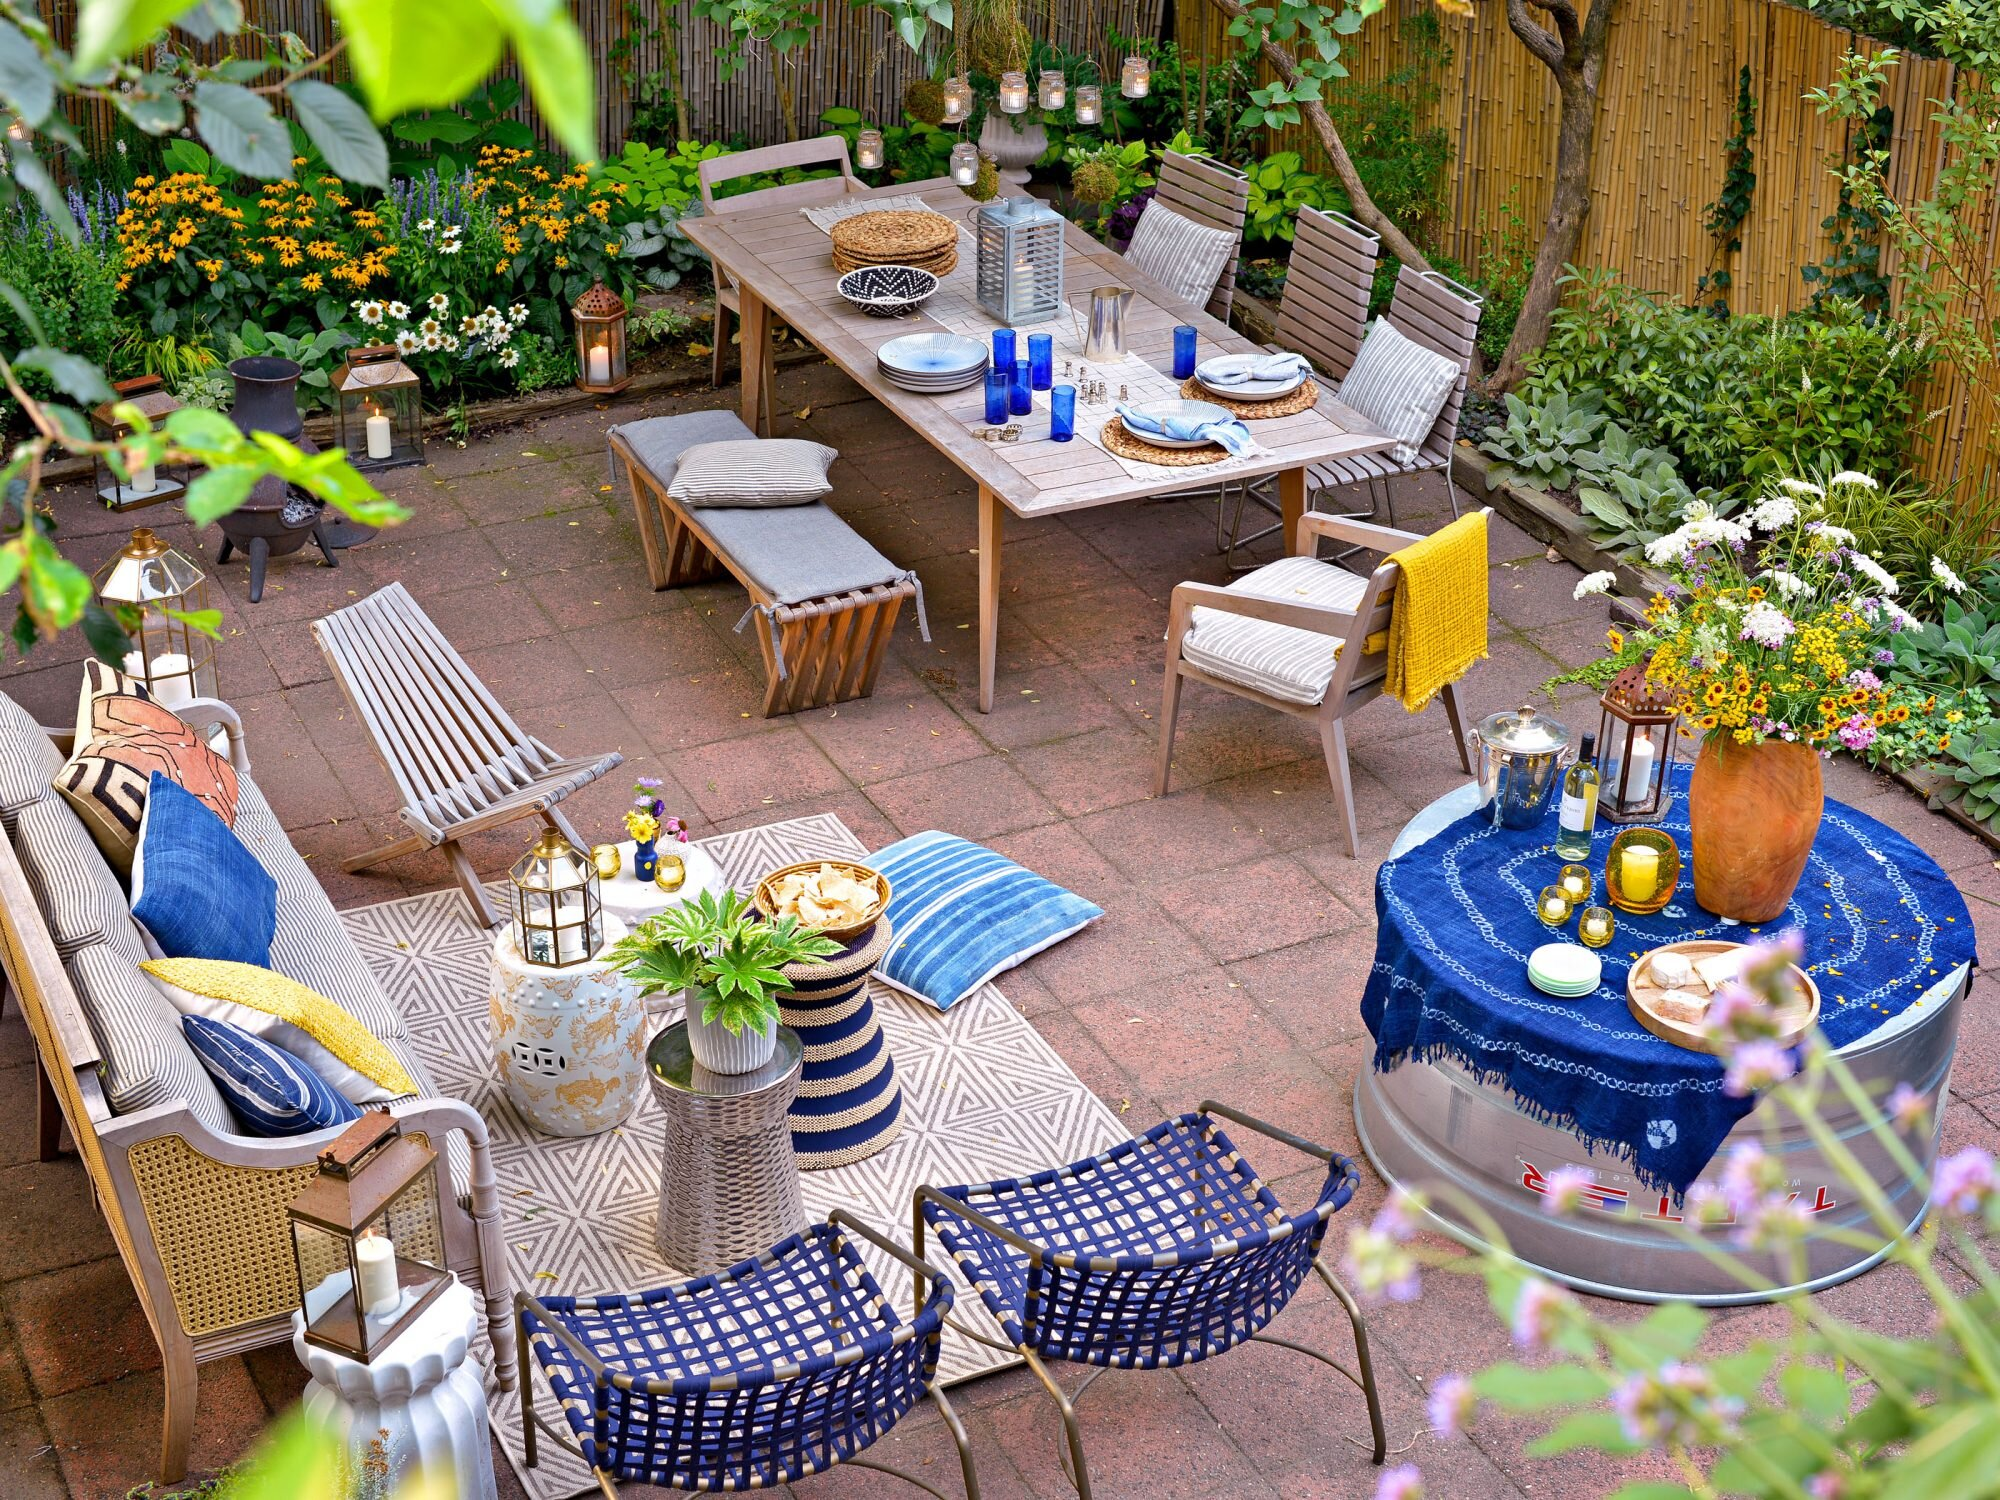 How To Turn Your Patio Into A Bright Urban Oasis Midwest Living